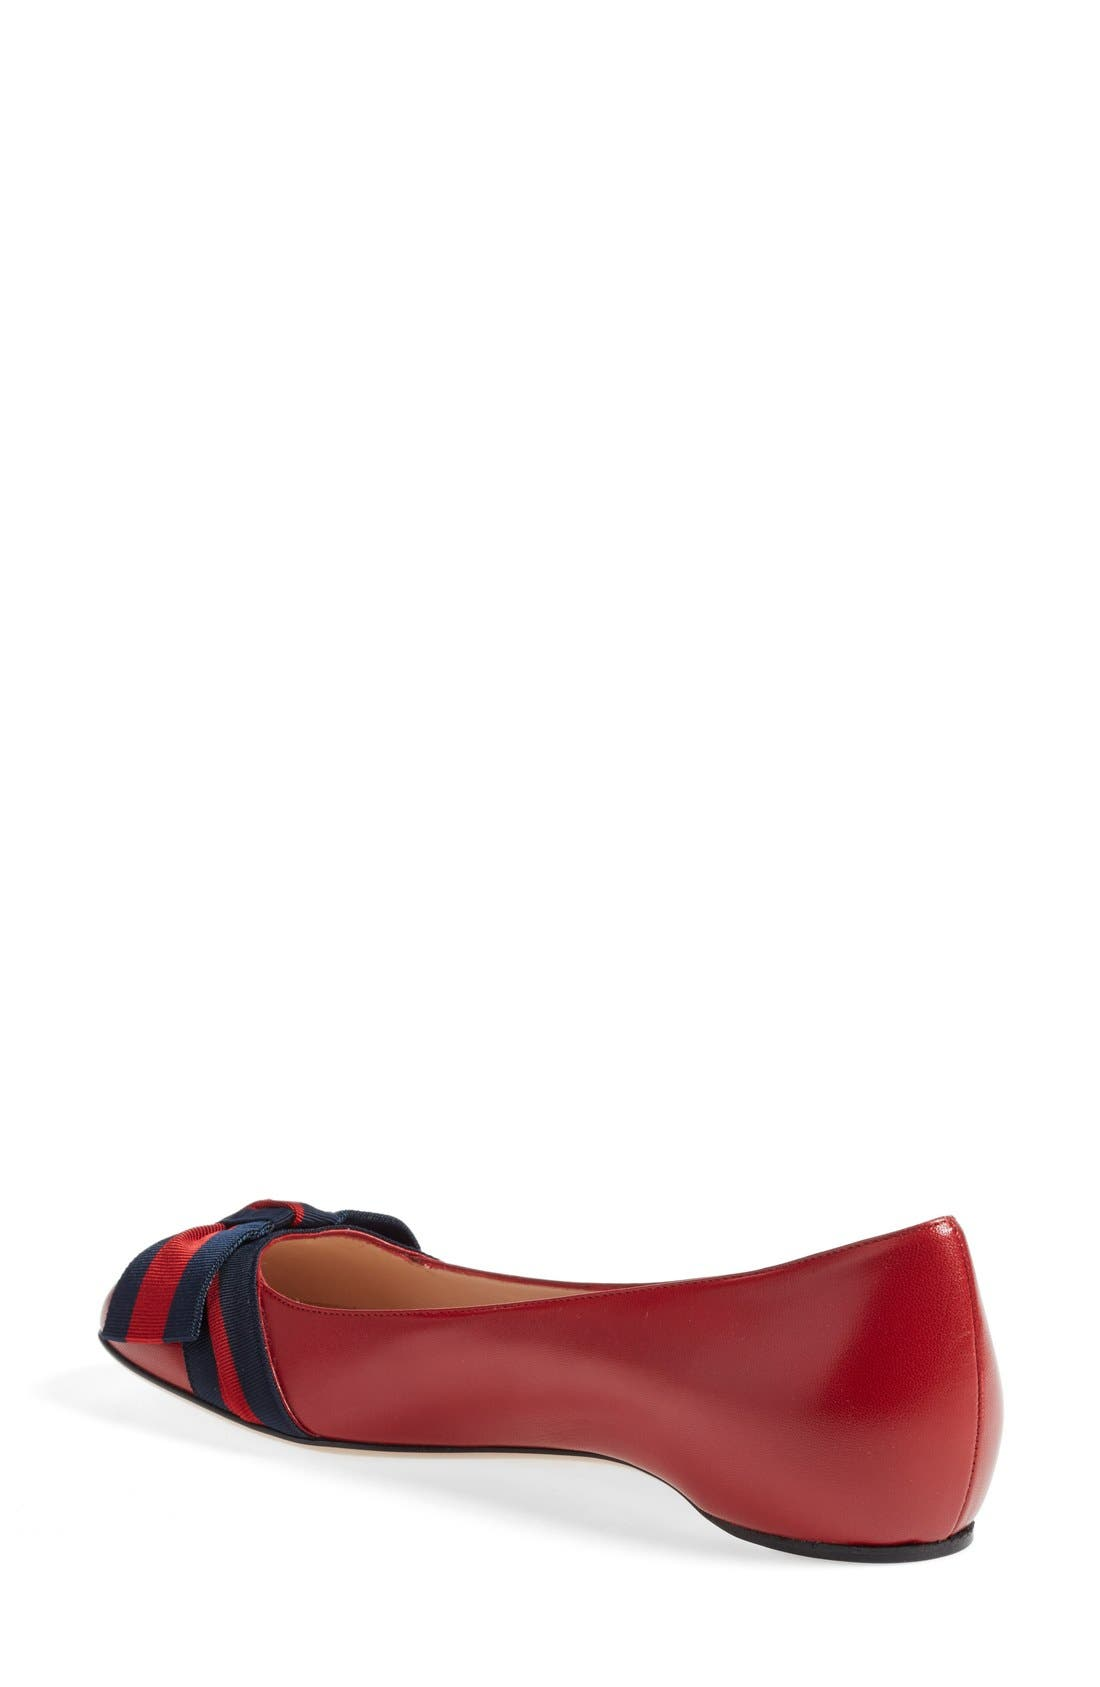 Alternate Image 2  - Gucci 'Aline' Bow Ballet Flat (Women)